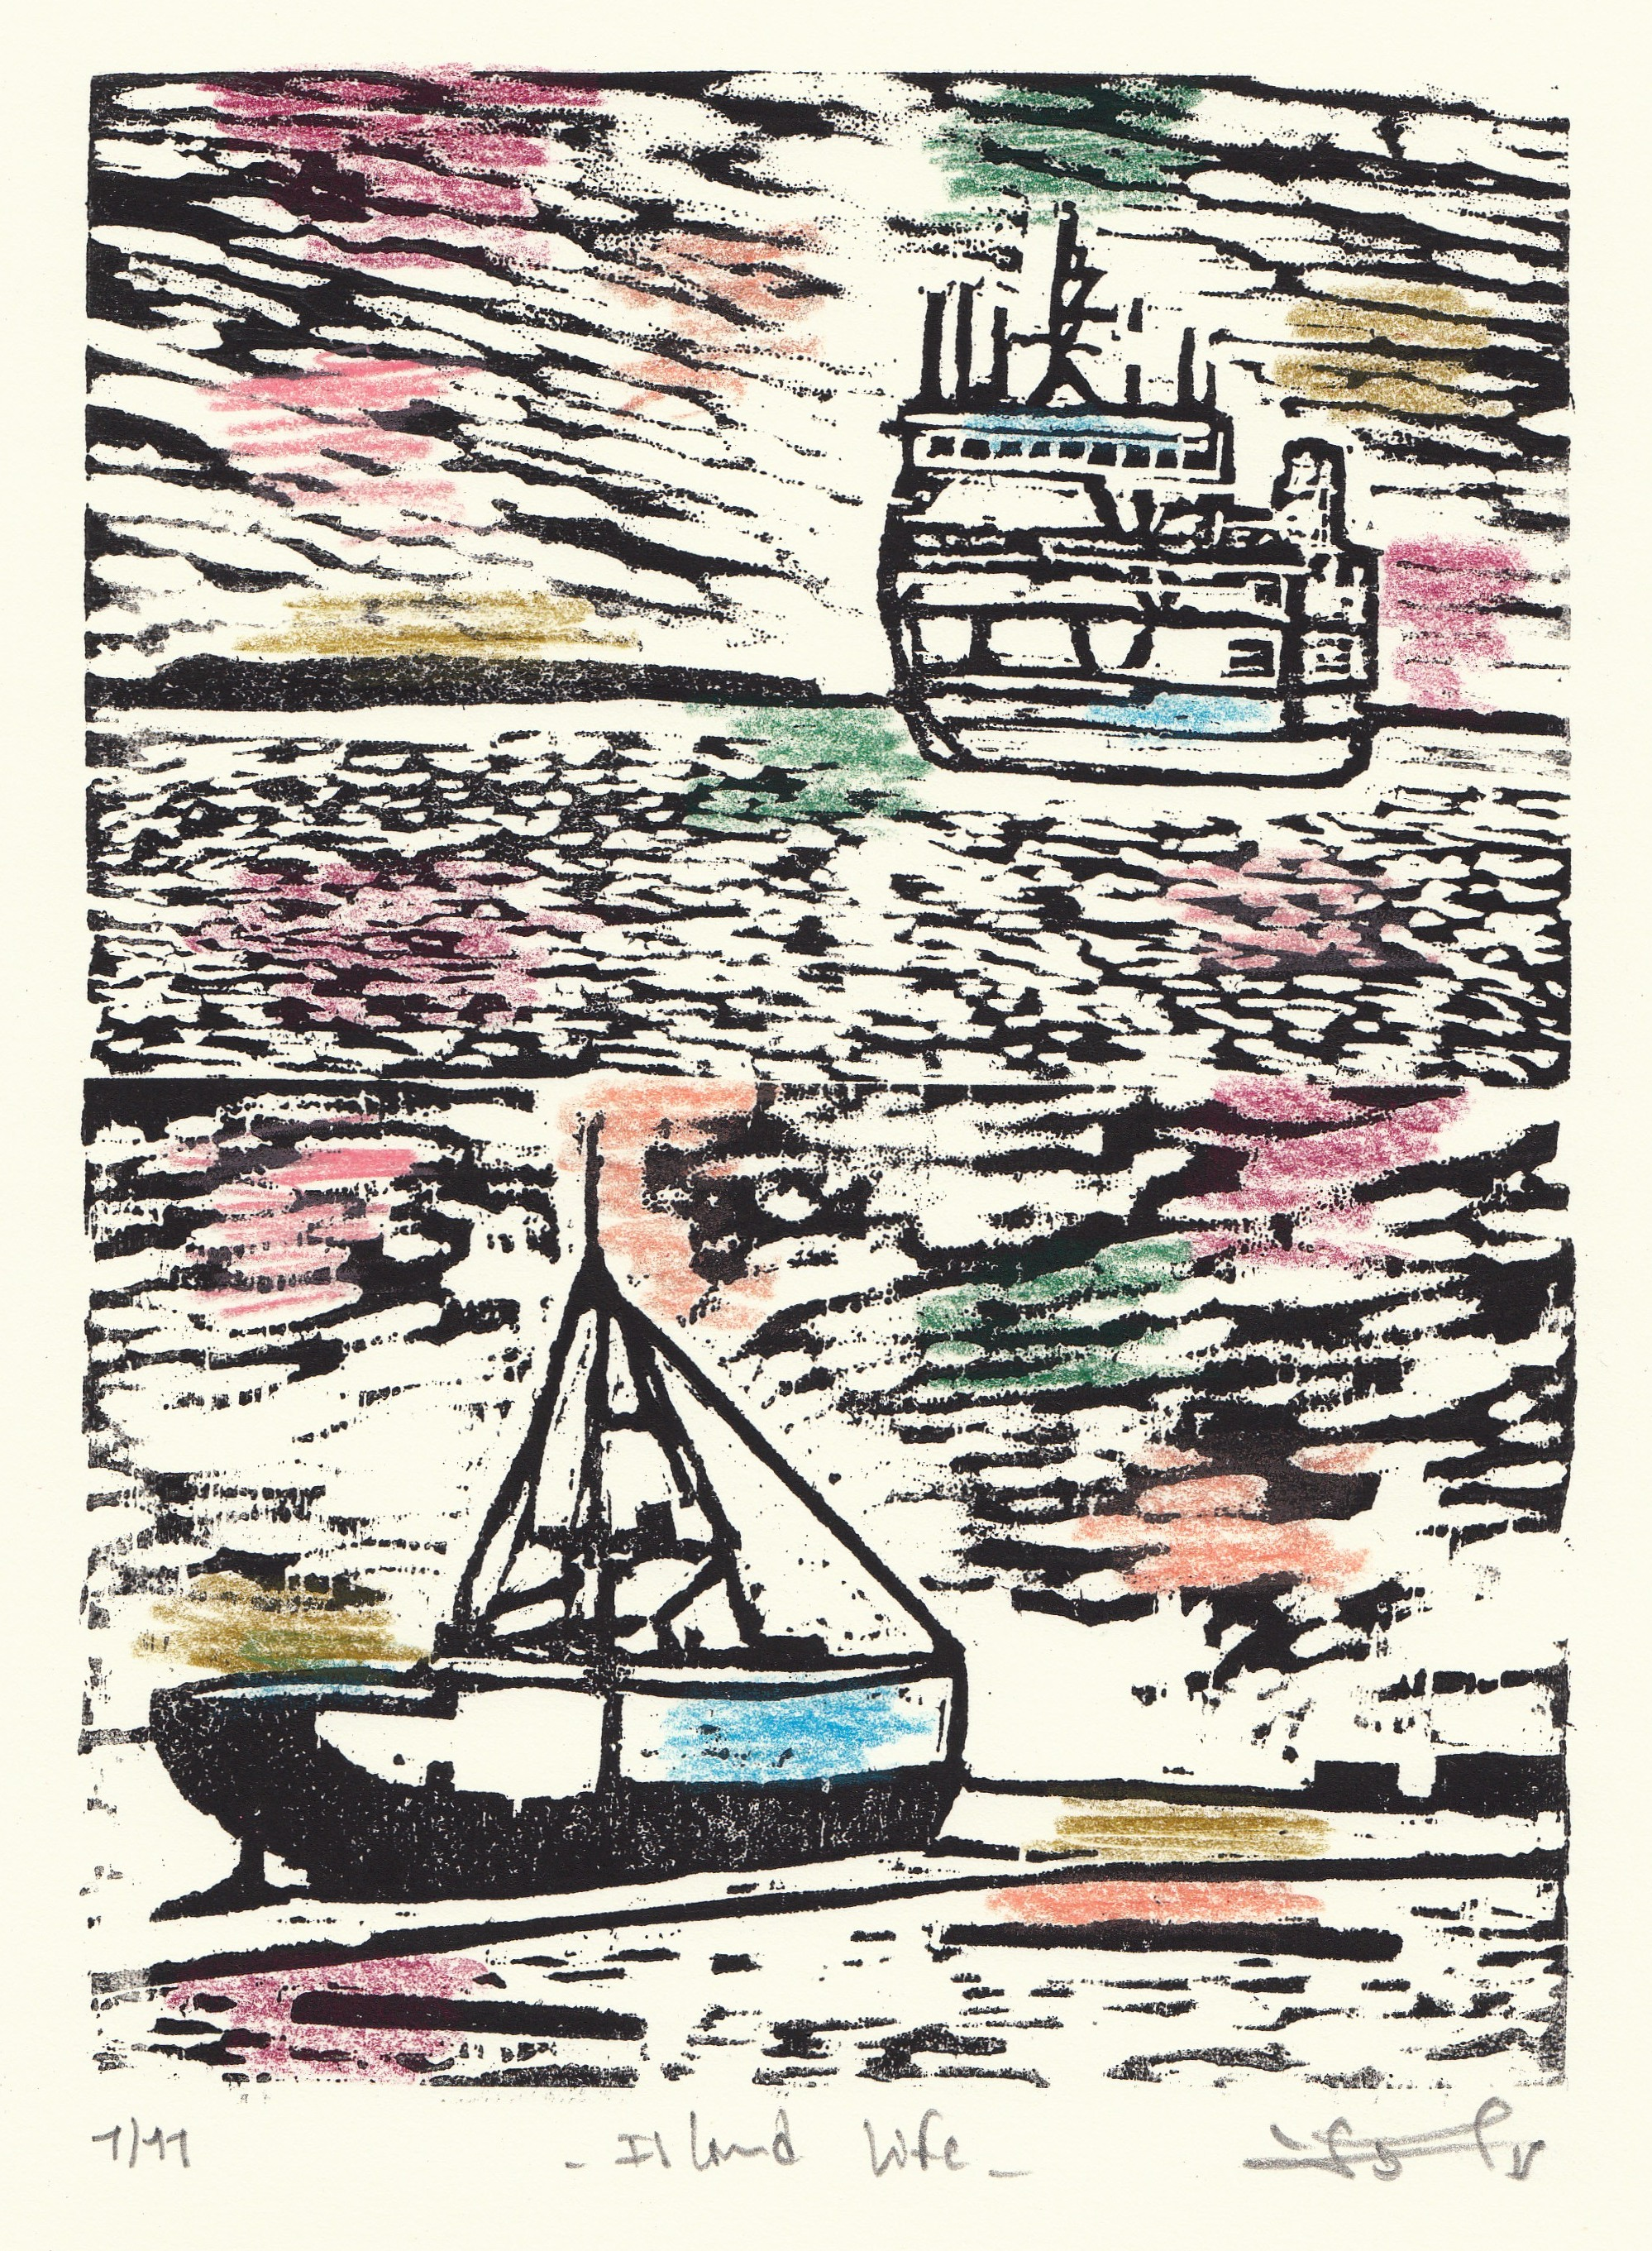 """Island Life  (1/11), woodcut and colored pencil, 13 1/4"""" x 10 1/4"""" framed, $200"""